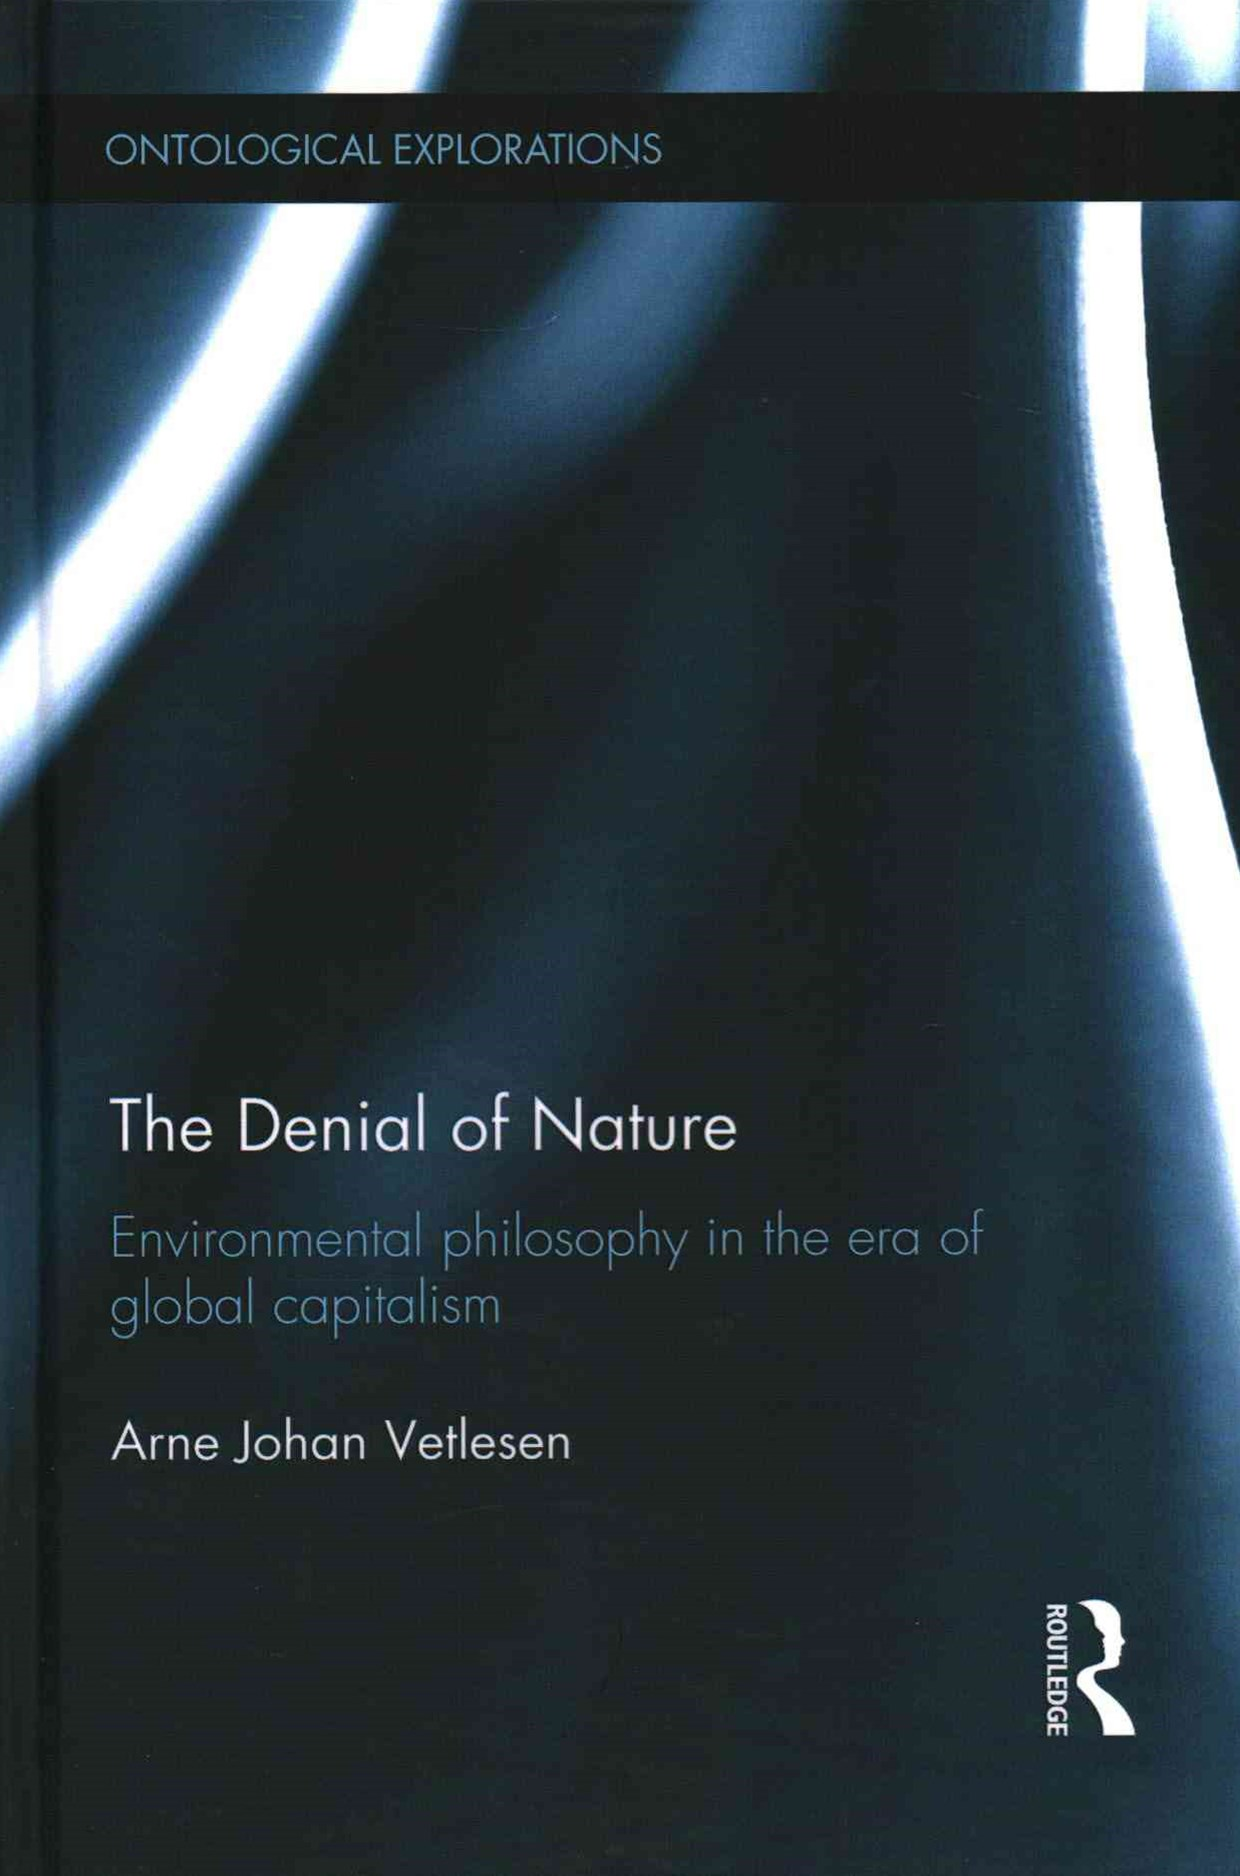 The Denial of Nature